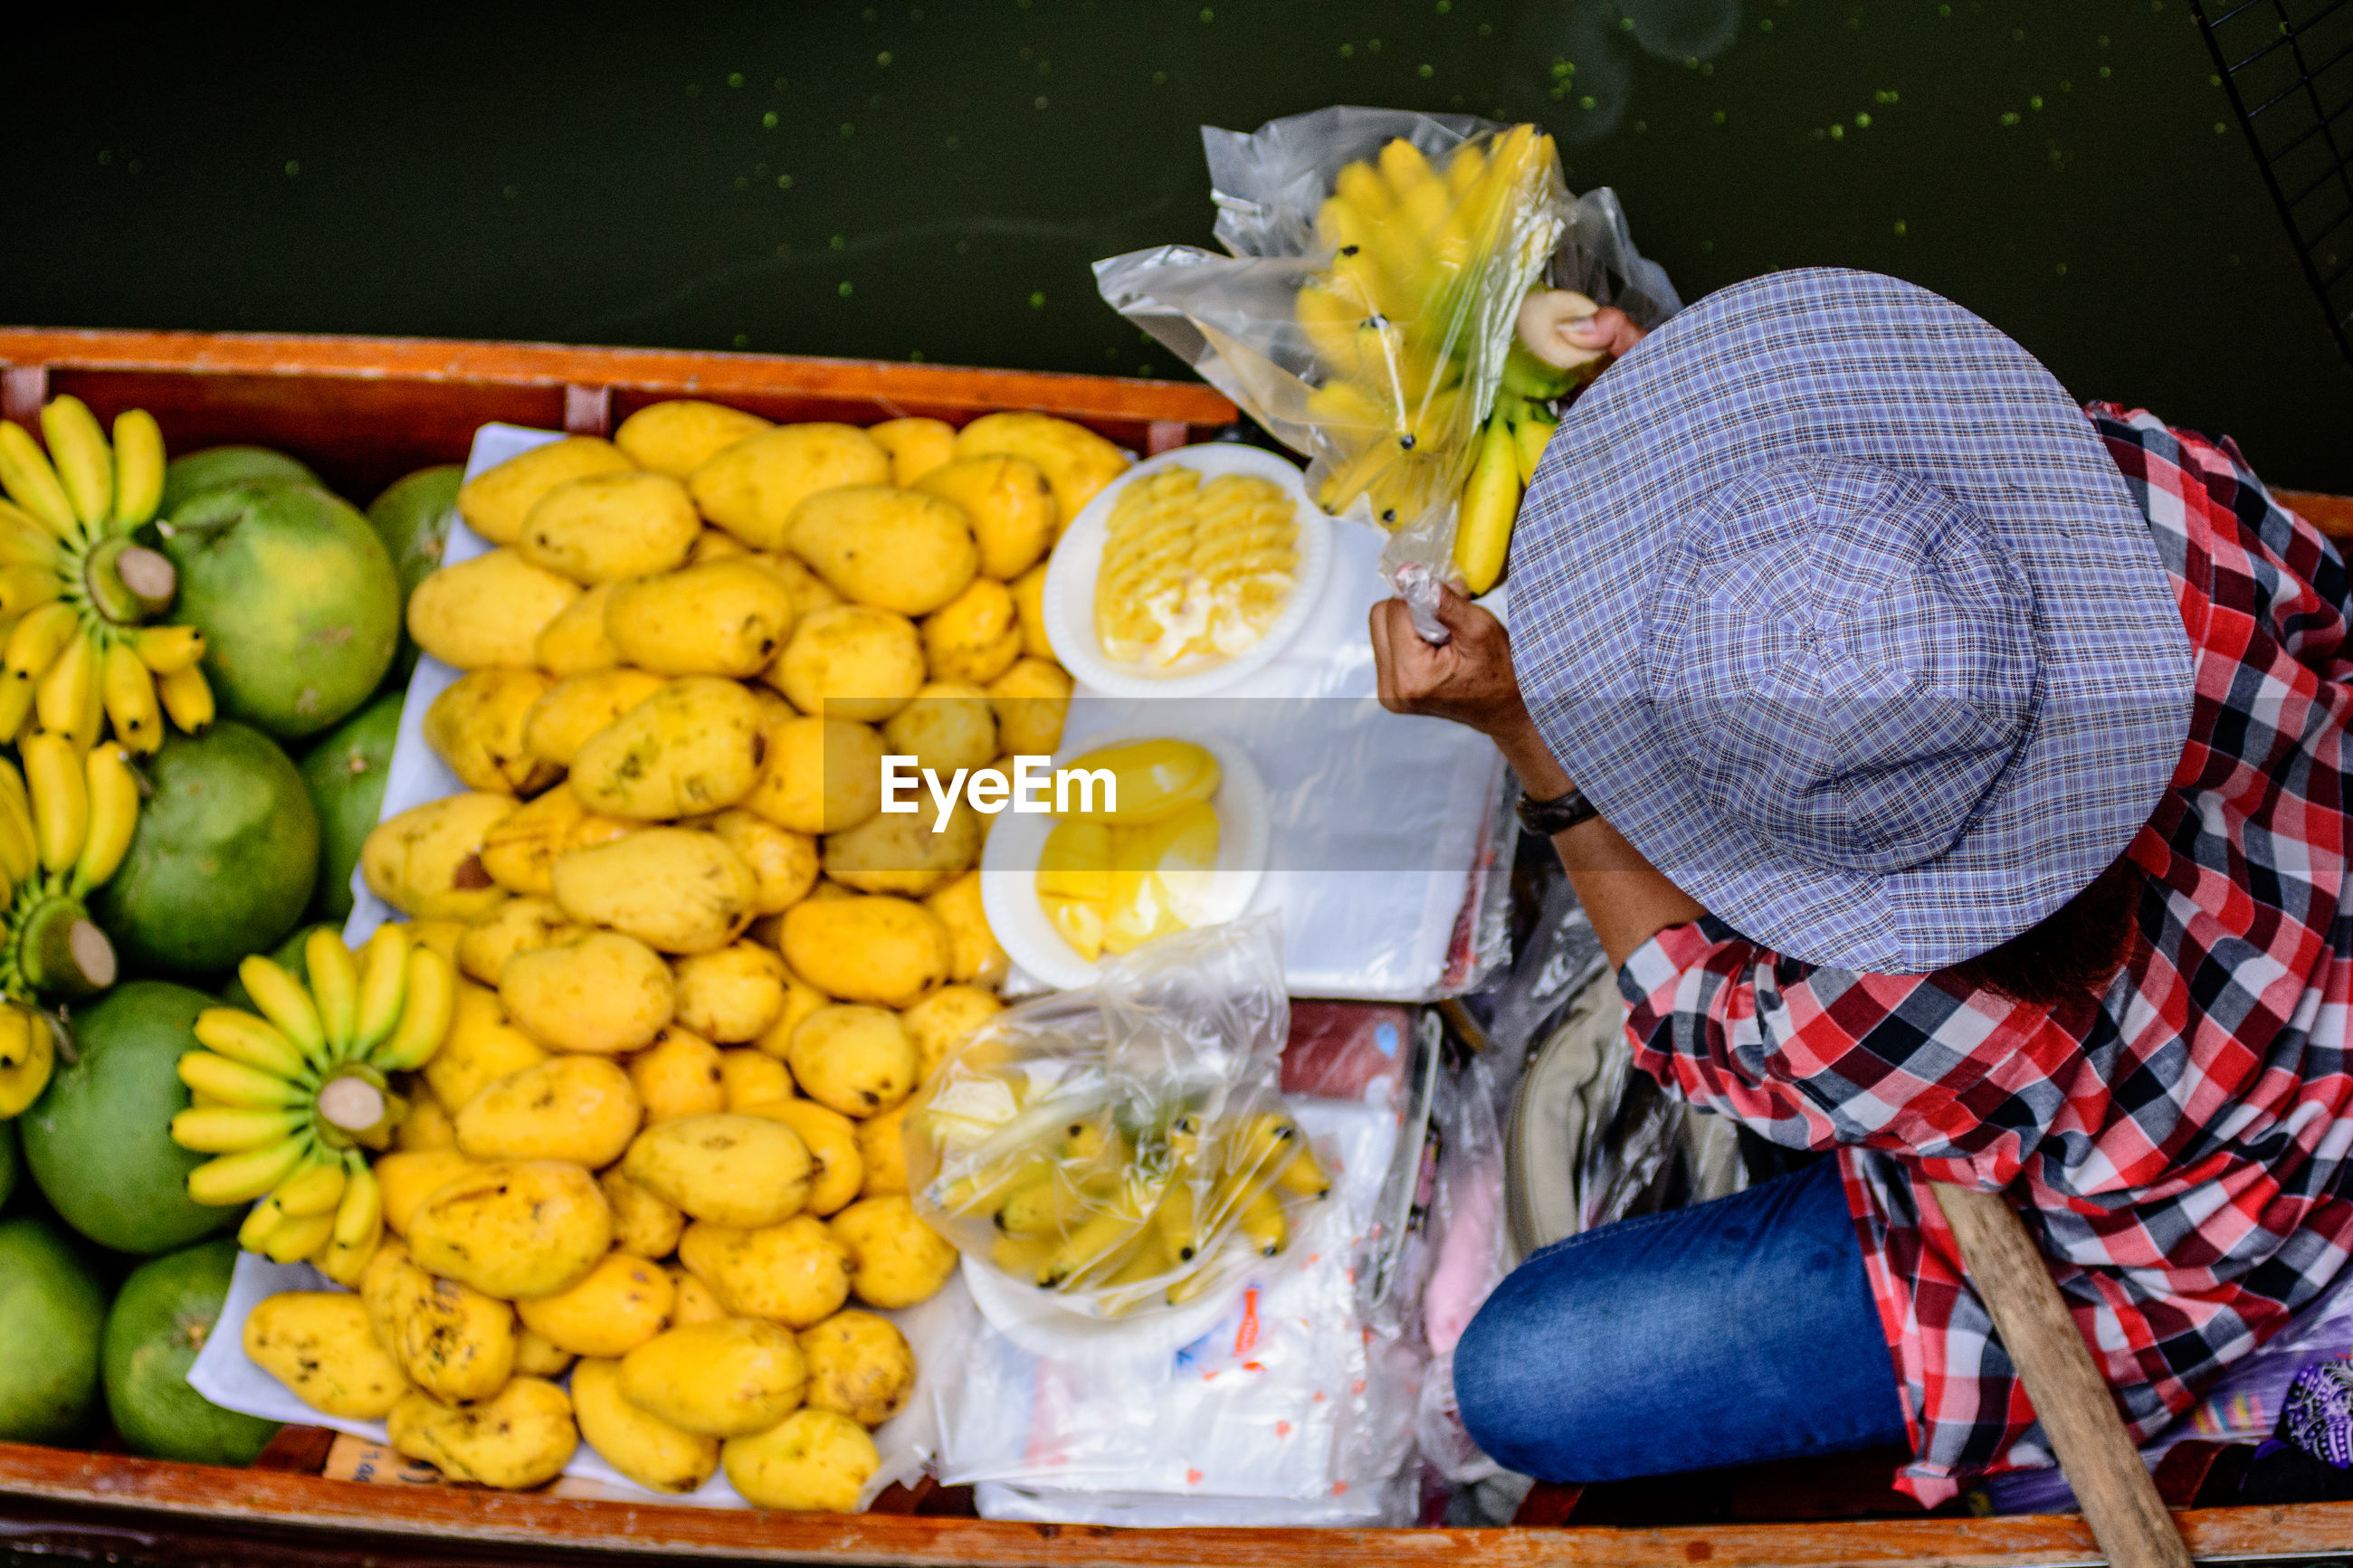 Man selling fruits on boat